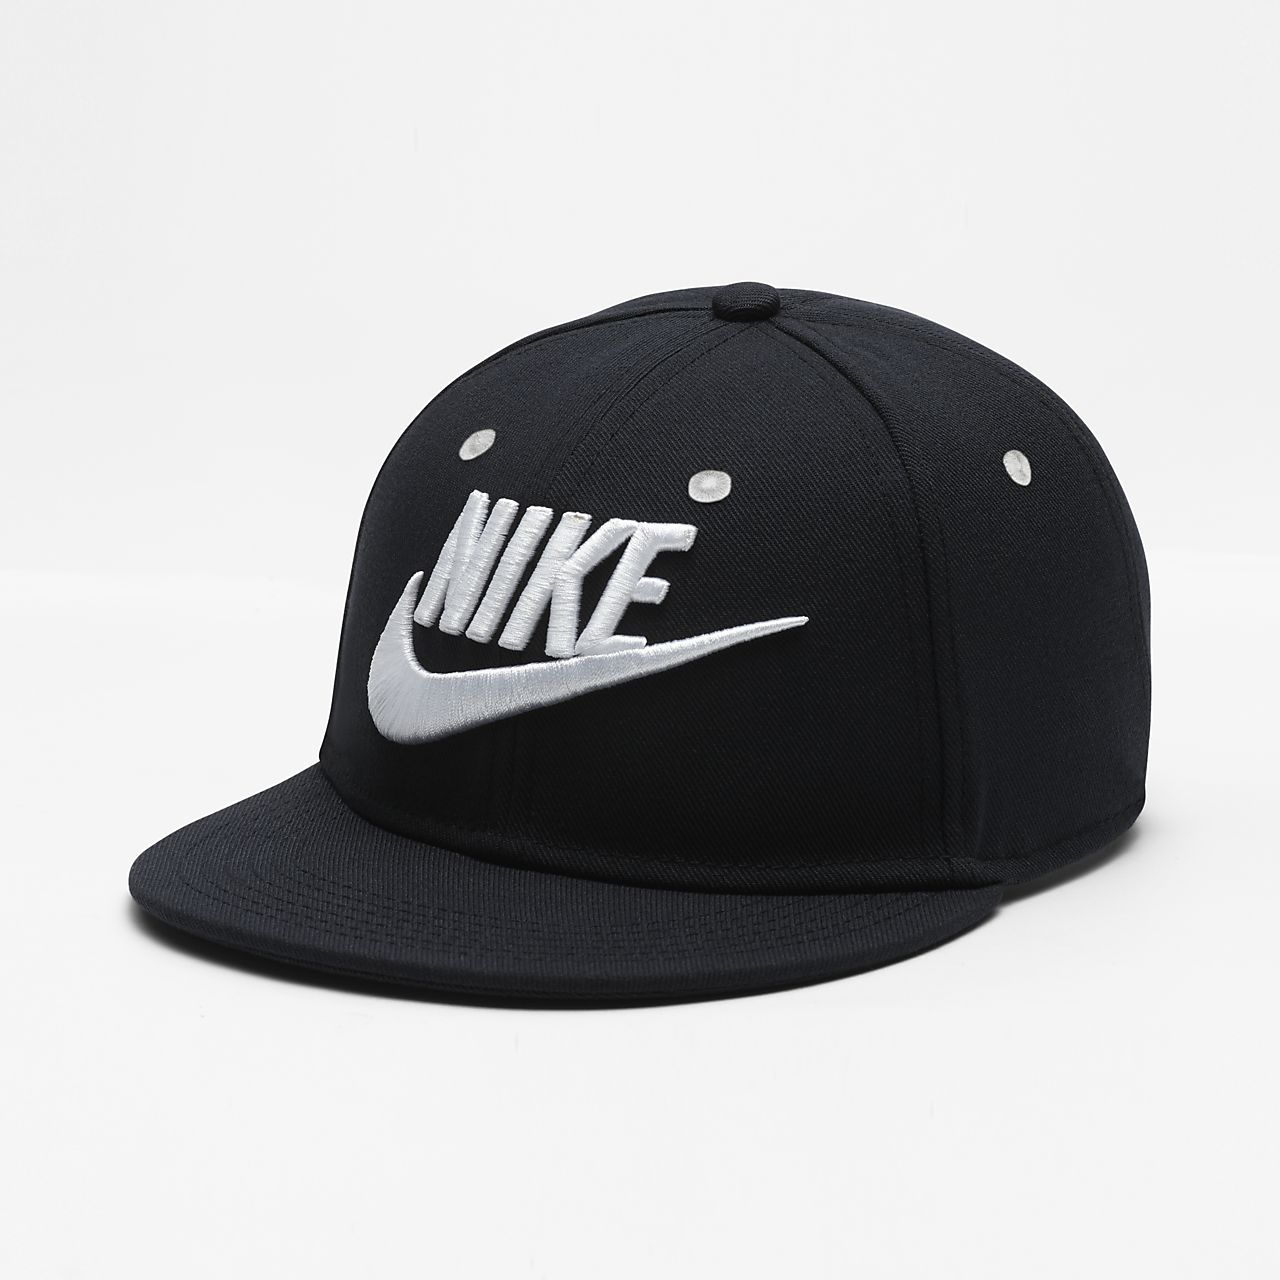 401352cccf3 Nike Futura True Older Kids  Adjustable Hat. Nike.com GB